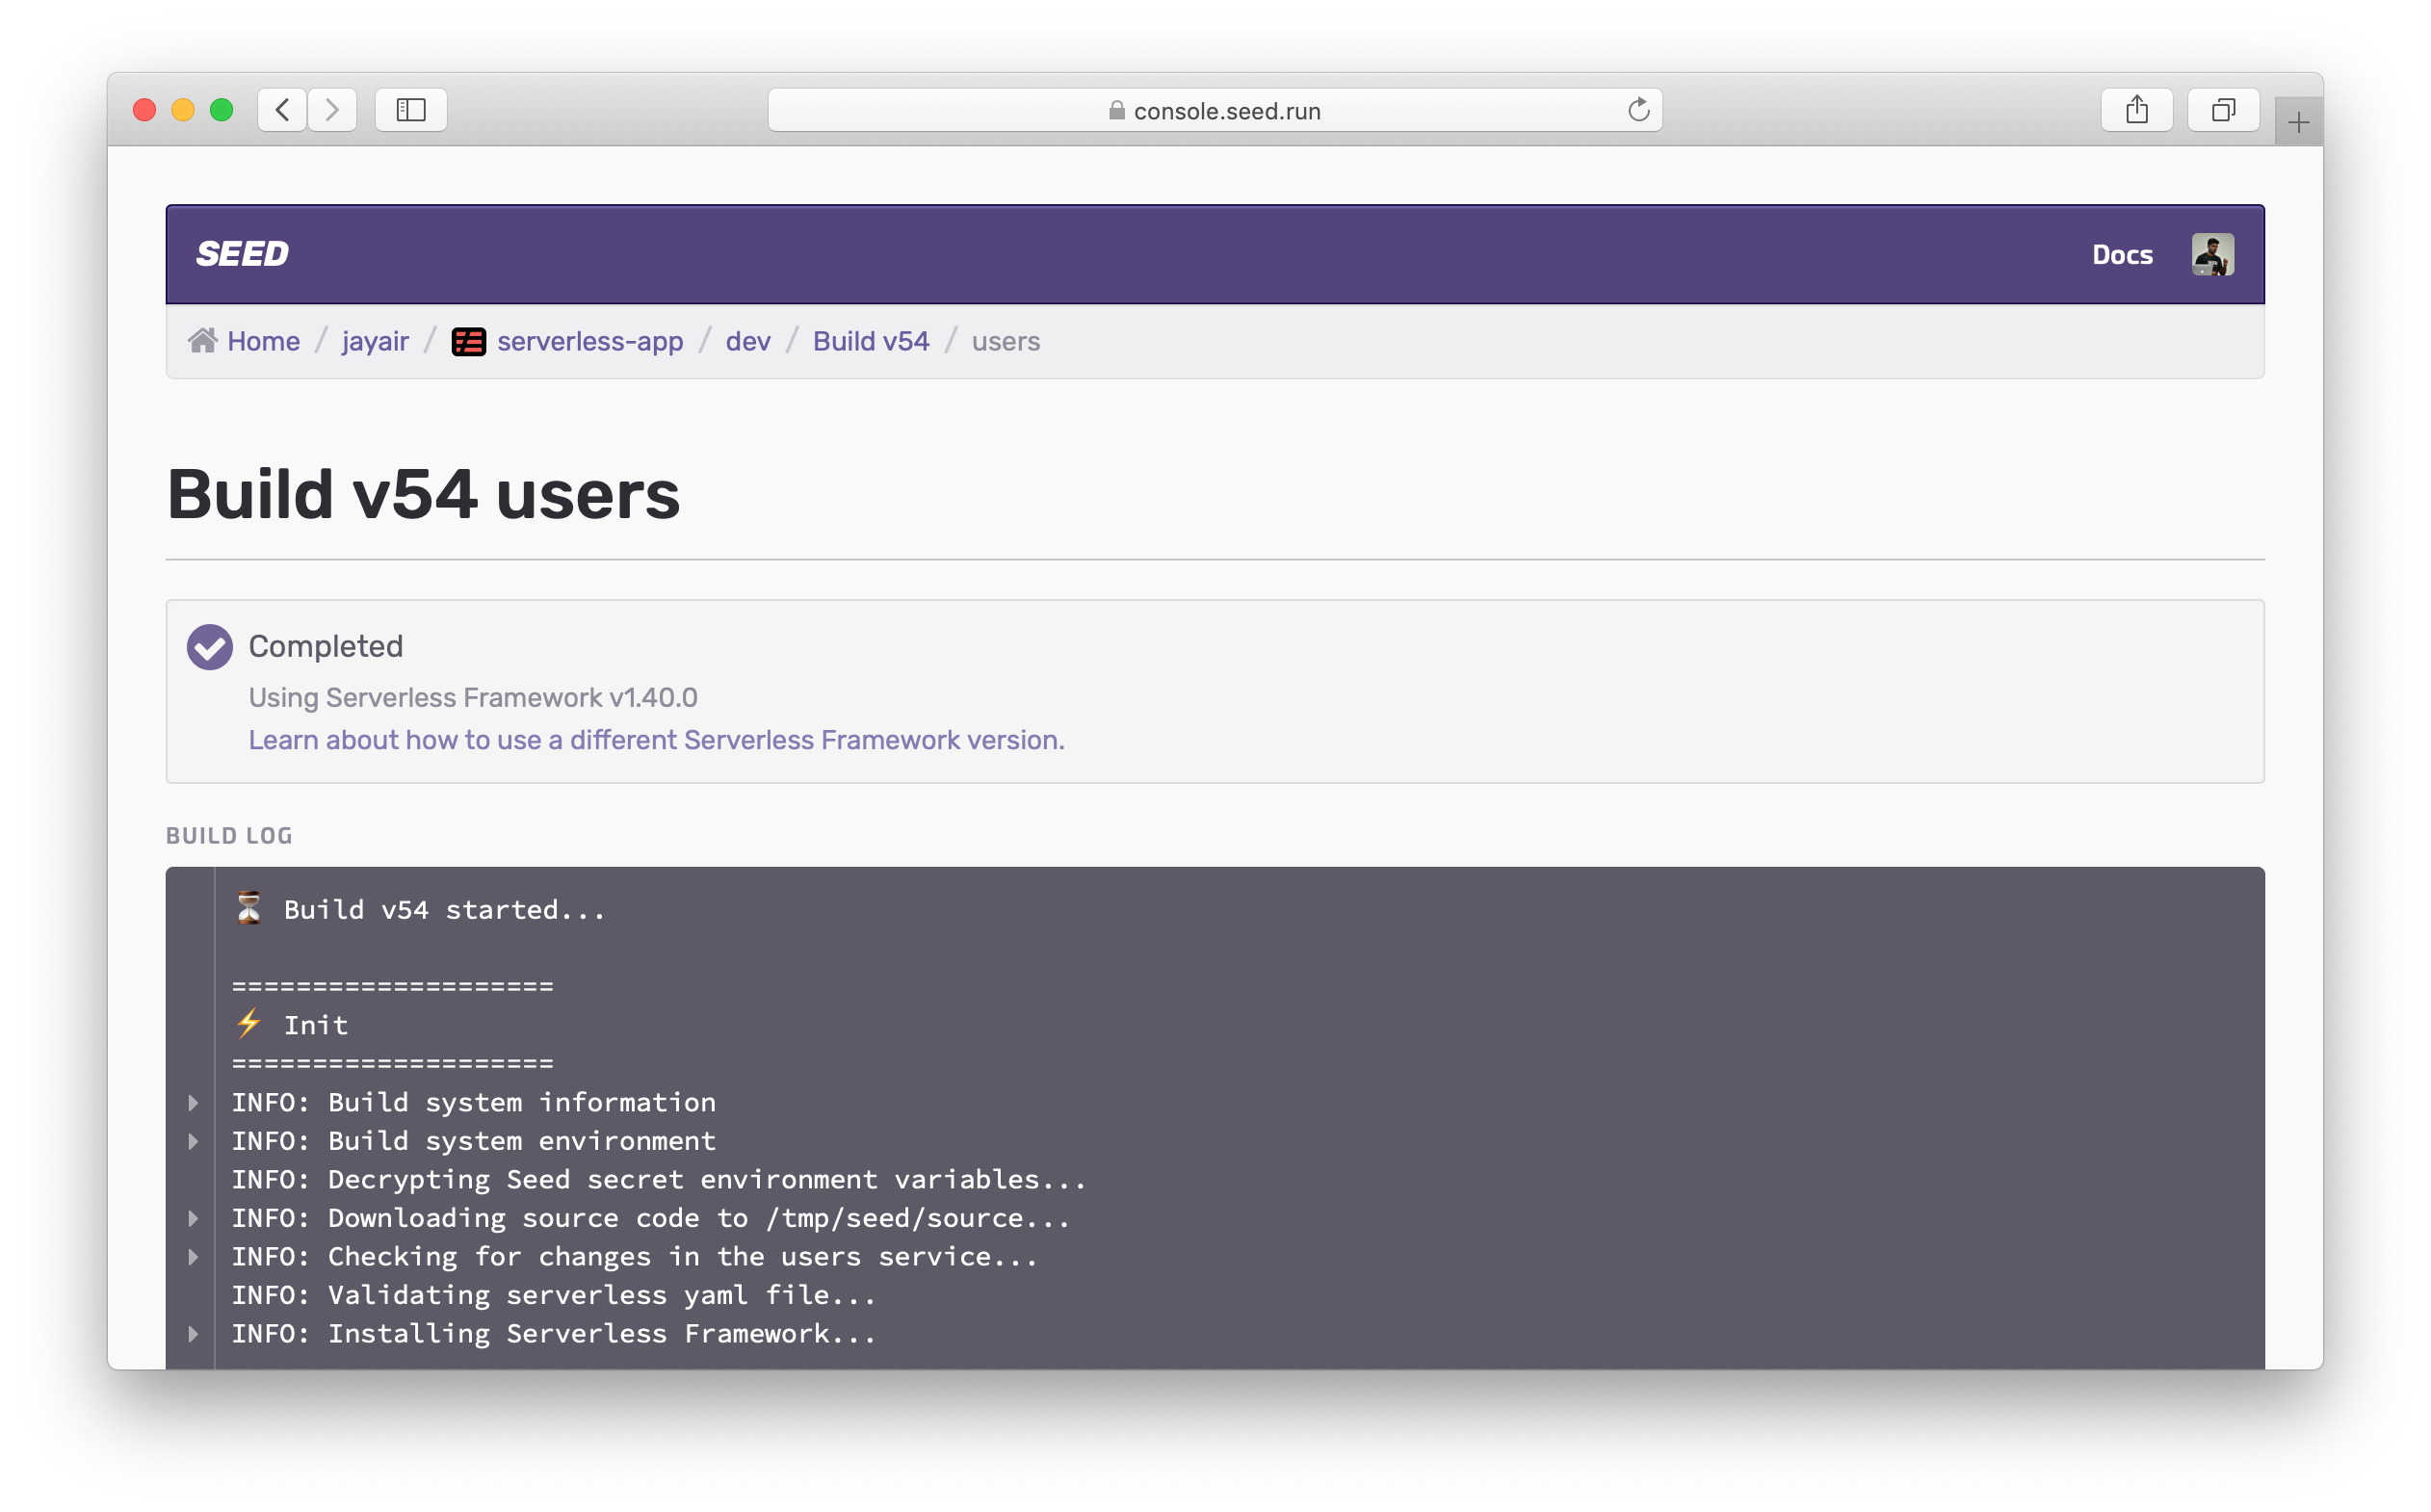 Serverless Framework version in build log